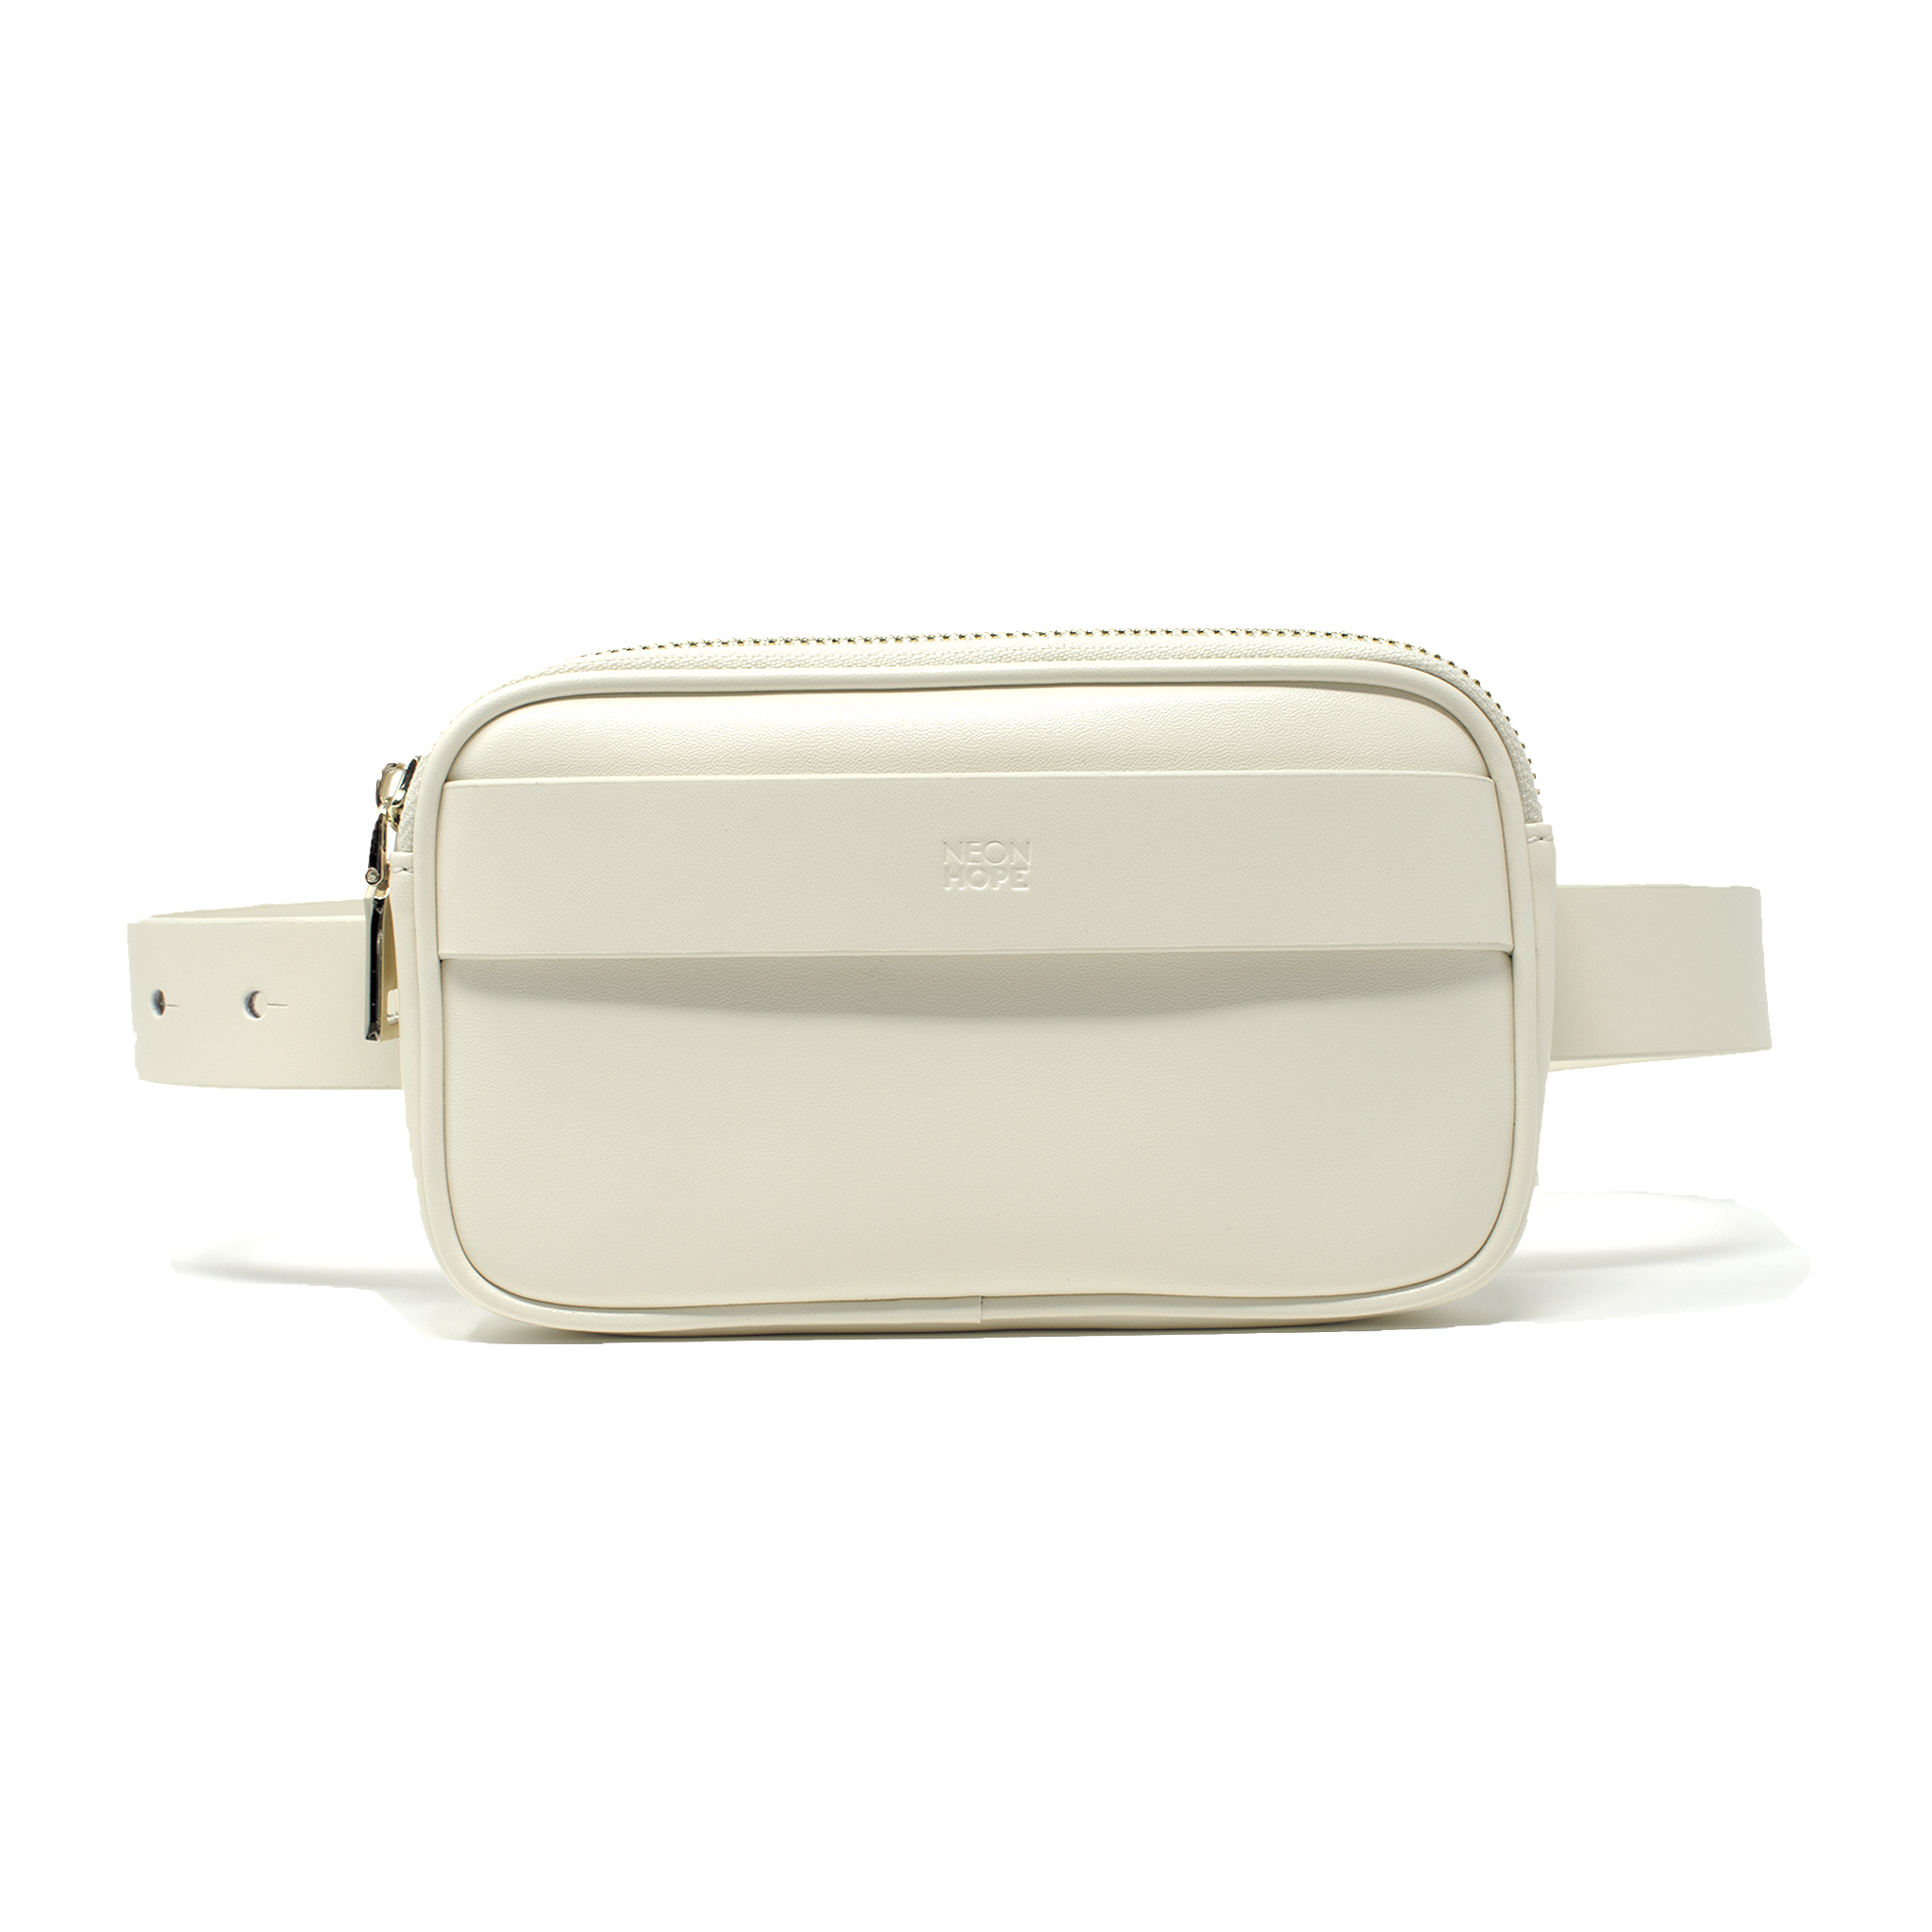 Bumbag - White by Neon Hope on curated-crowd.com